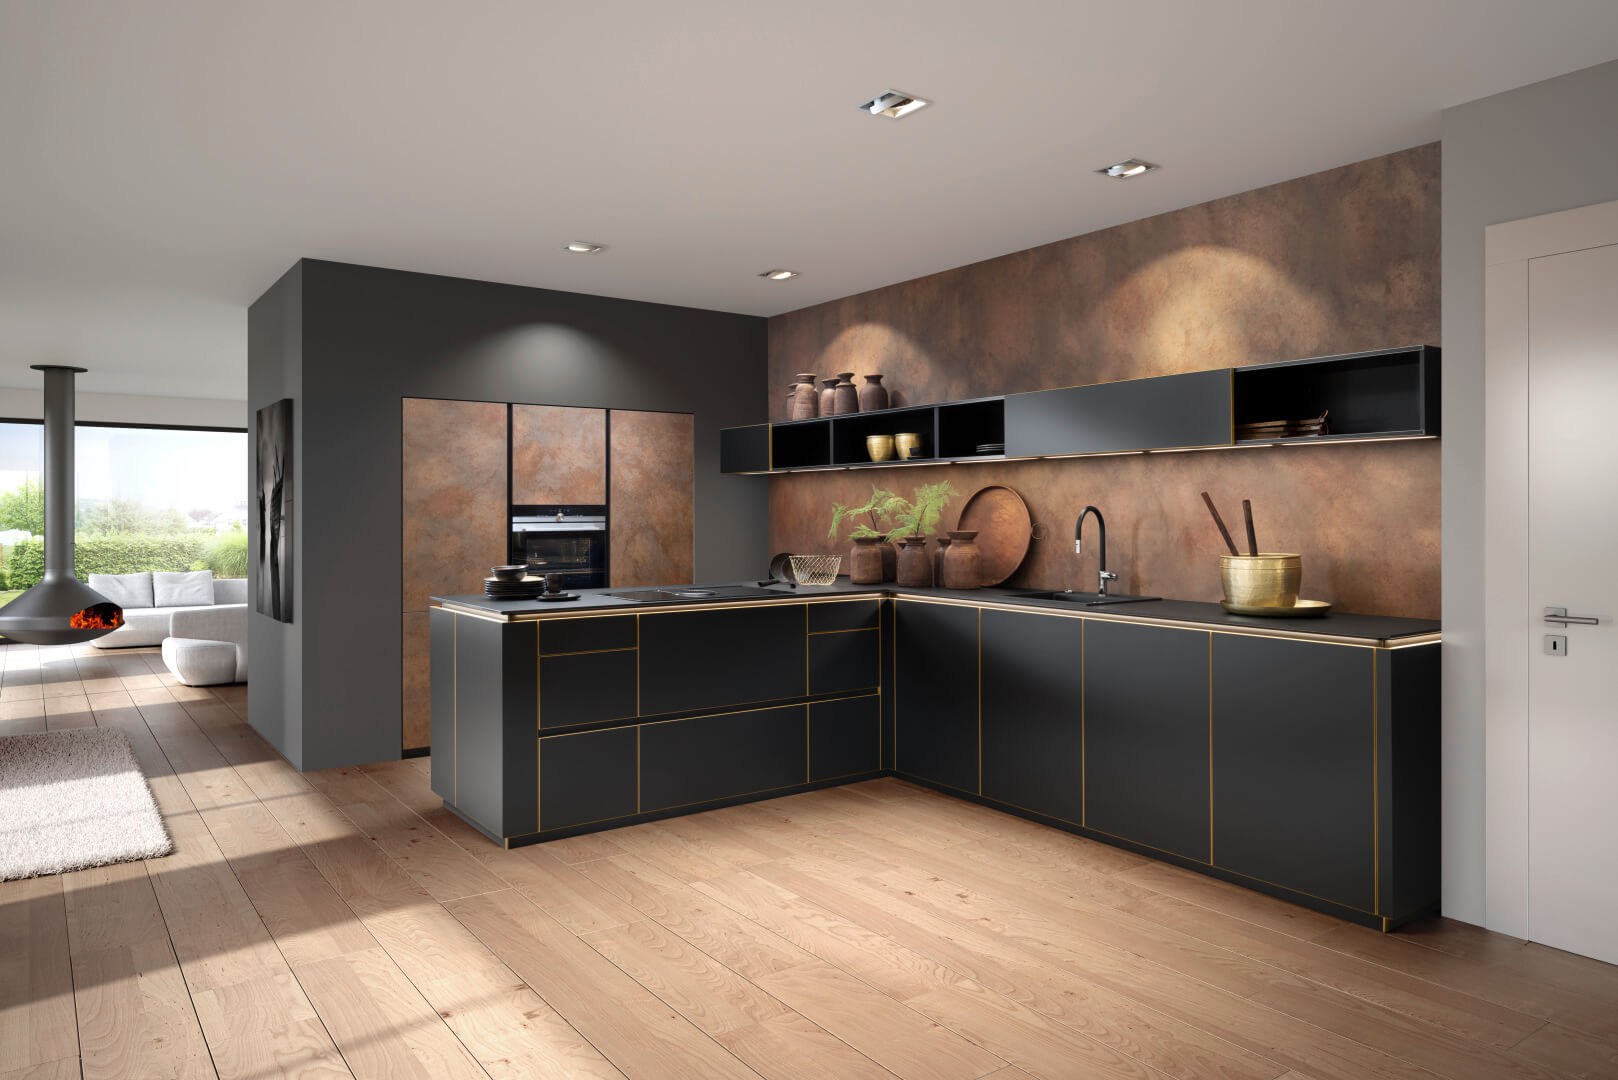 Nolte-Kitchens-Ferro-Gallery4